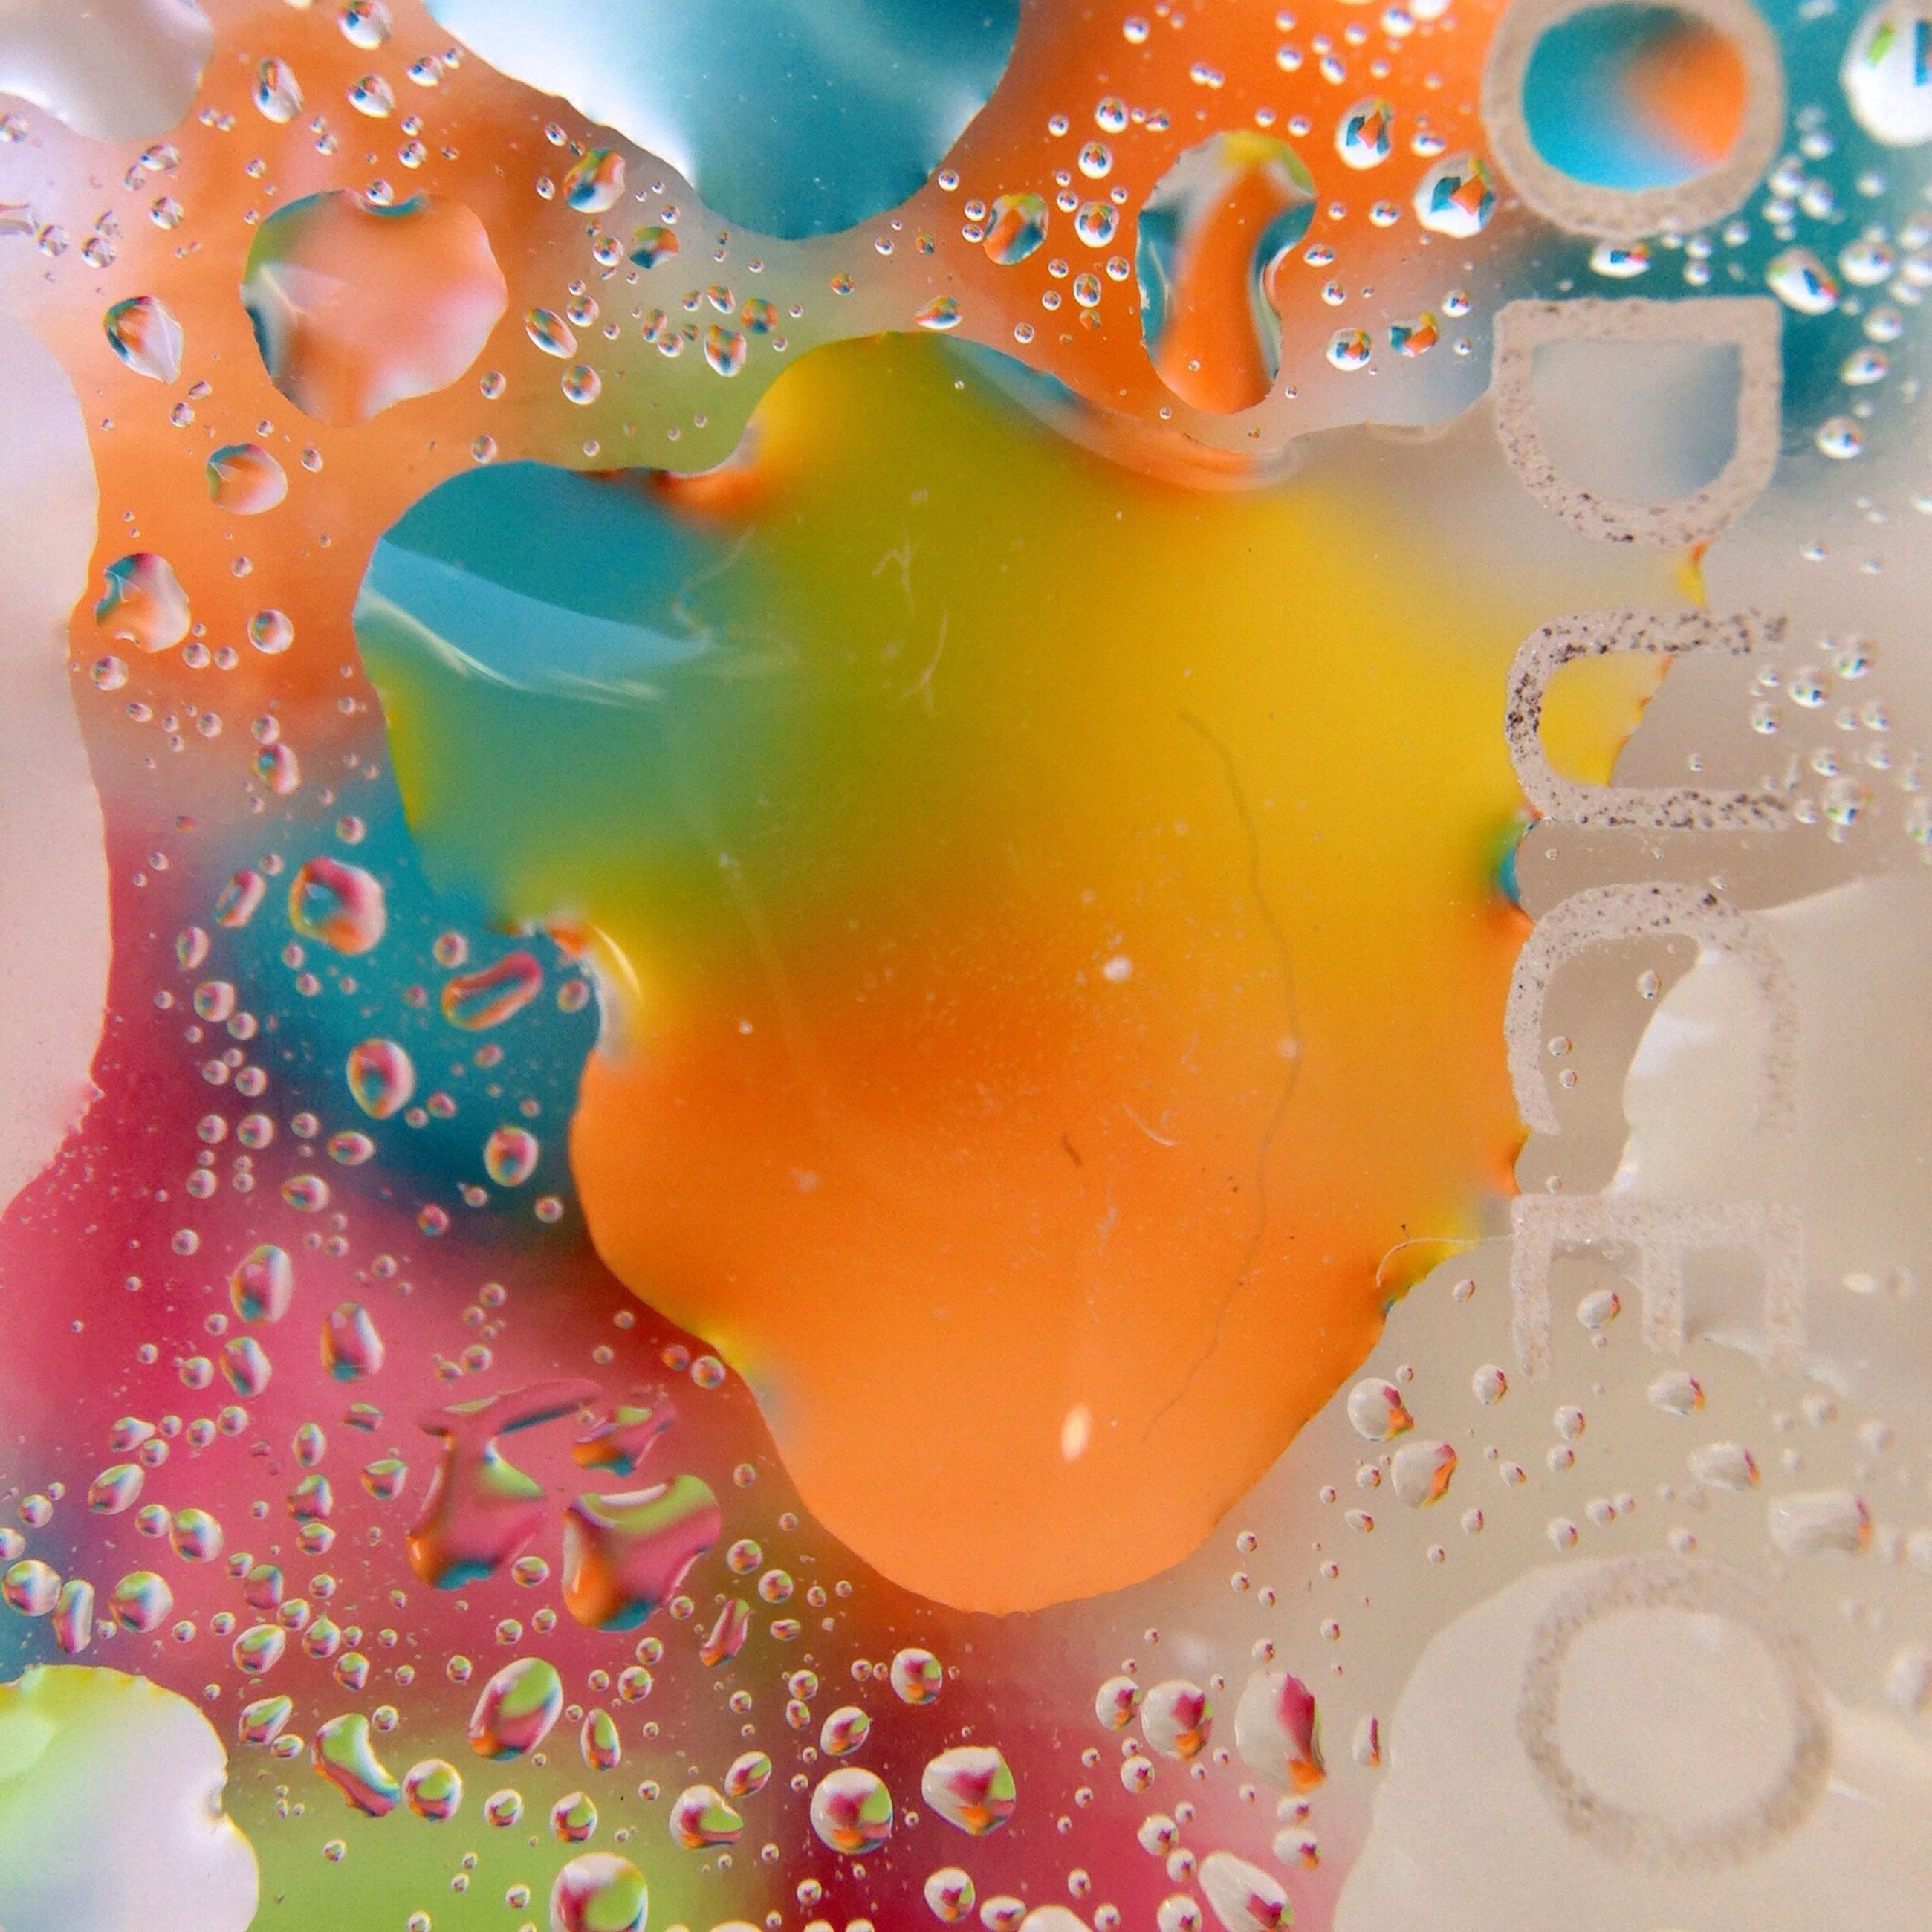 water, indoors, close-up, drop, wet, transparent, pattern, high angle view, bubble, red, multi colored, orange color, glass - material, reflection, freshness, no people, creativity, detail, shape, design